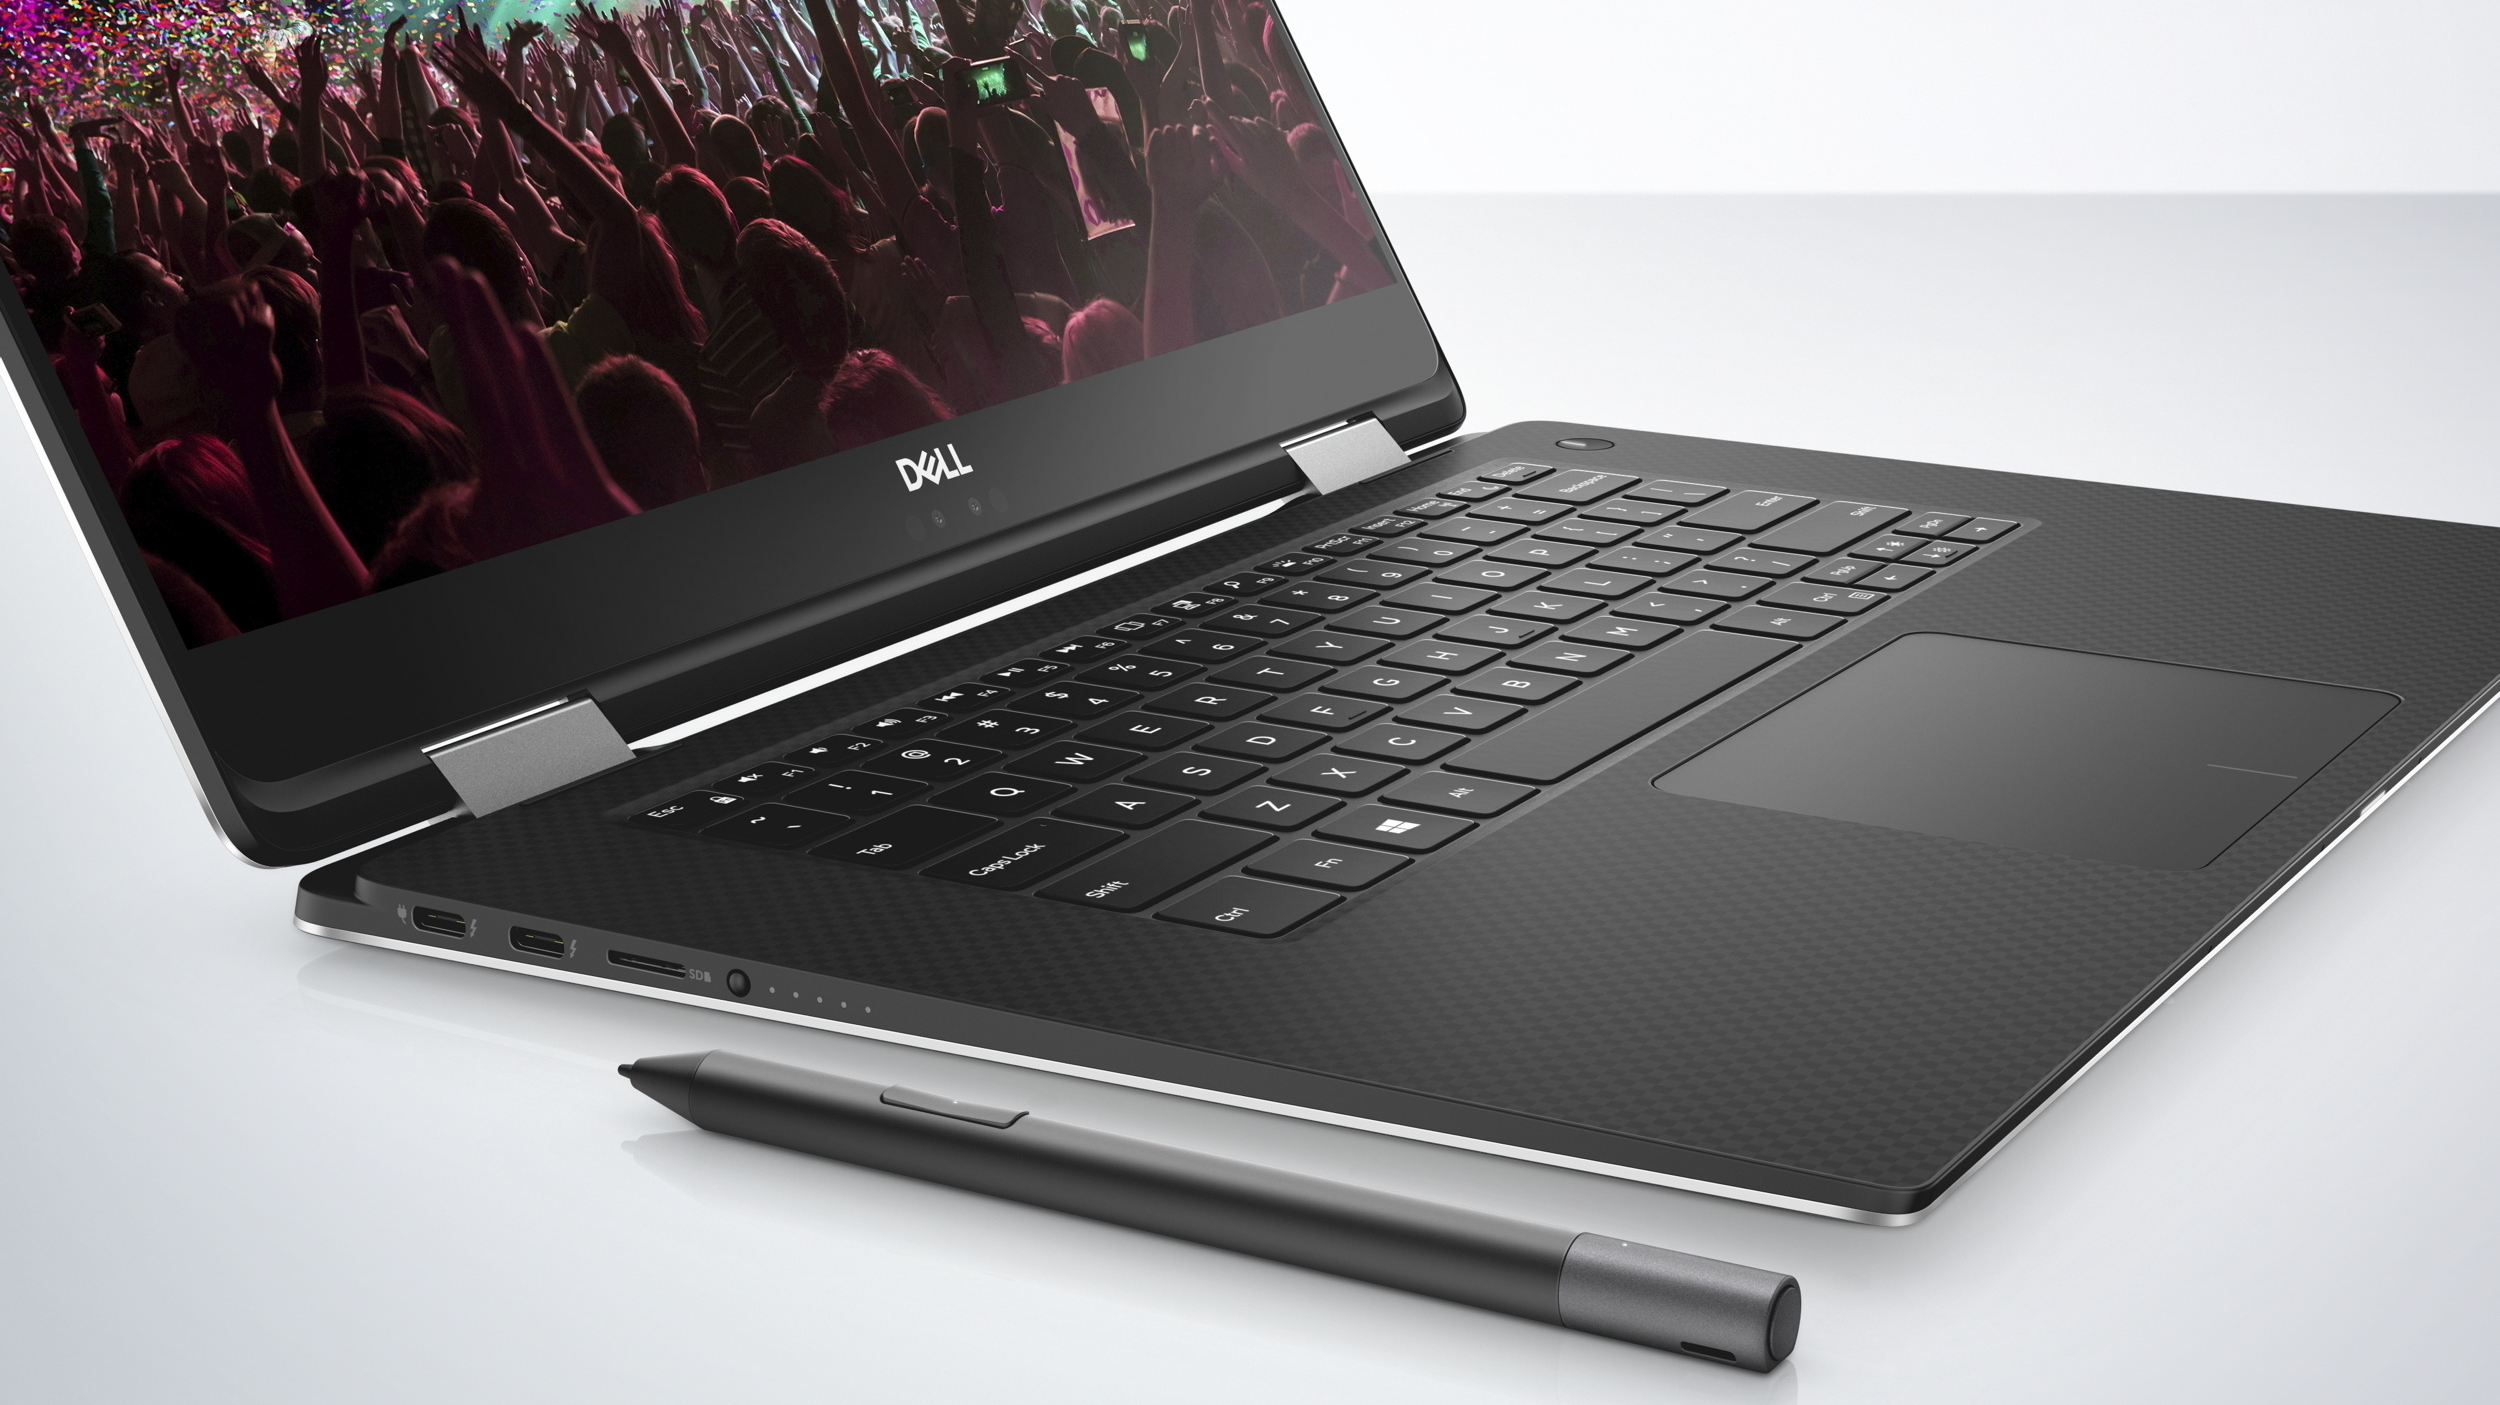 dell xps 15 2 in 1 15 zoll convertible mit intel amd. Black Bedroom Furniture Sets. Home Design Ideas